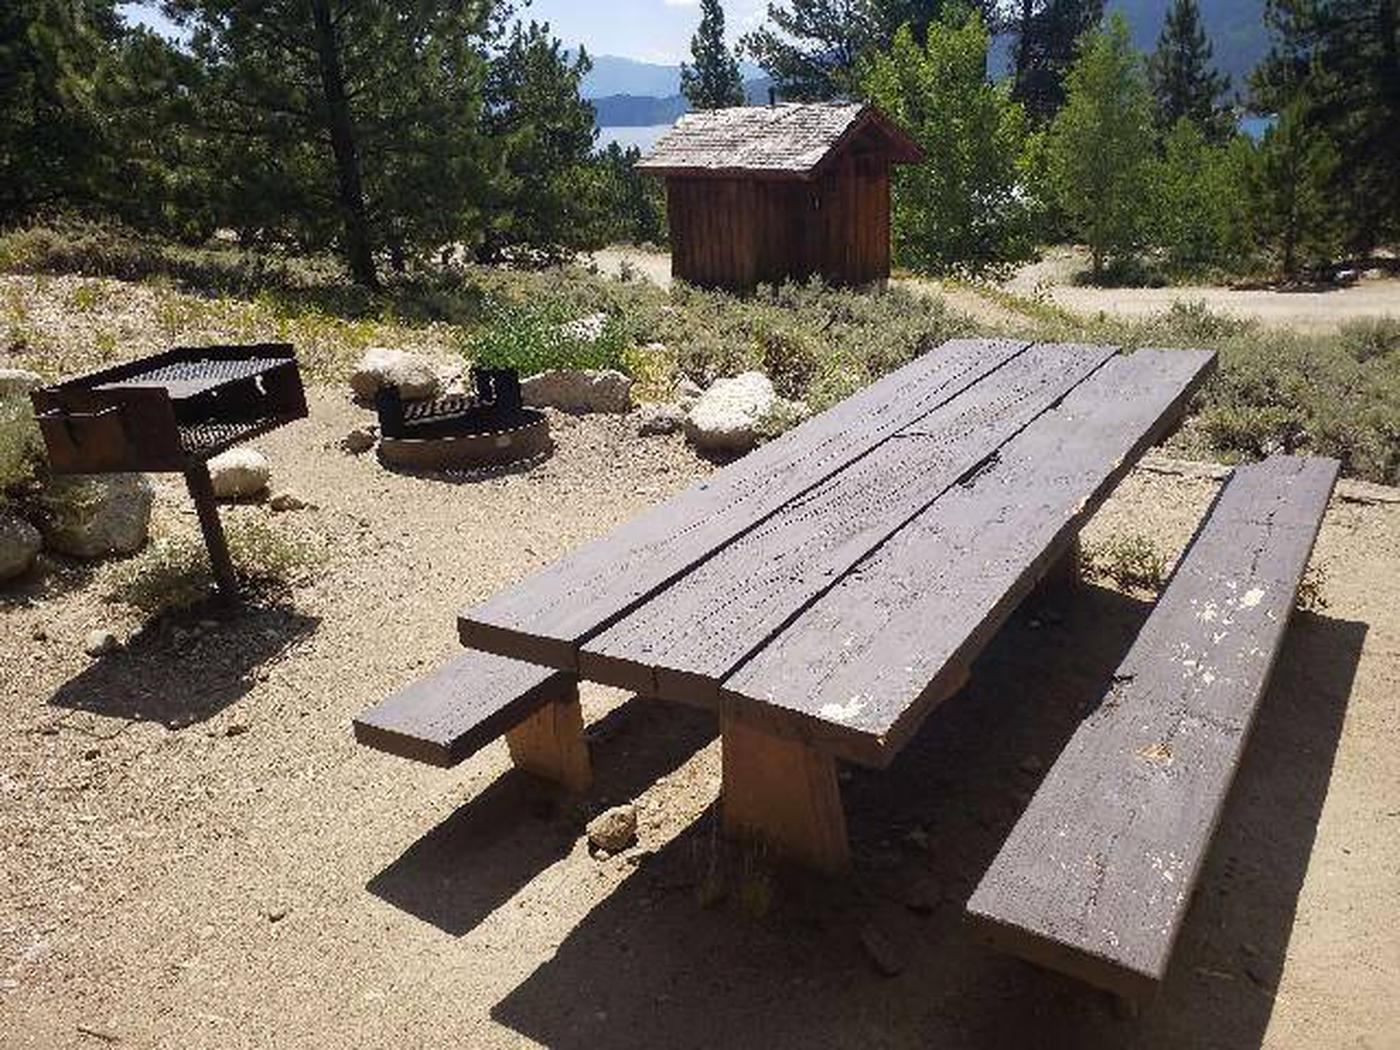 Lakeview Campground, site F4